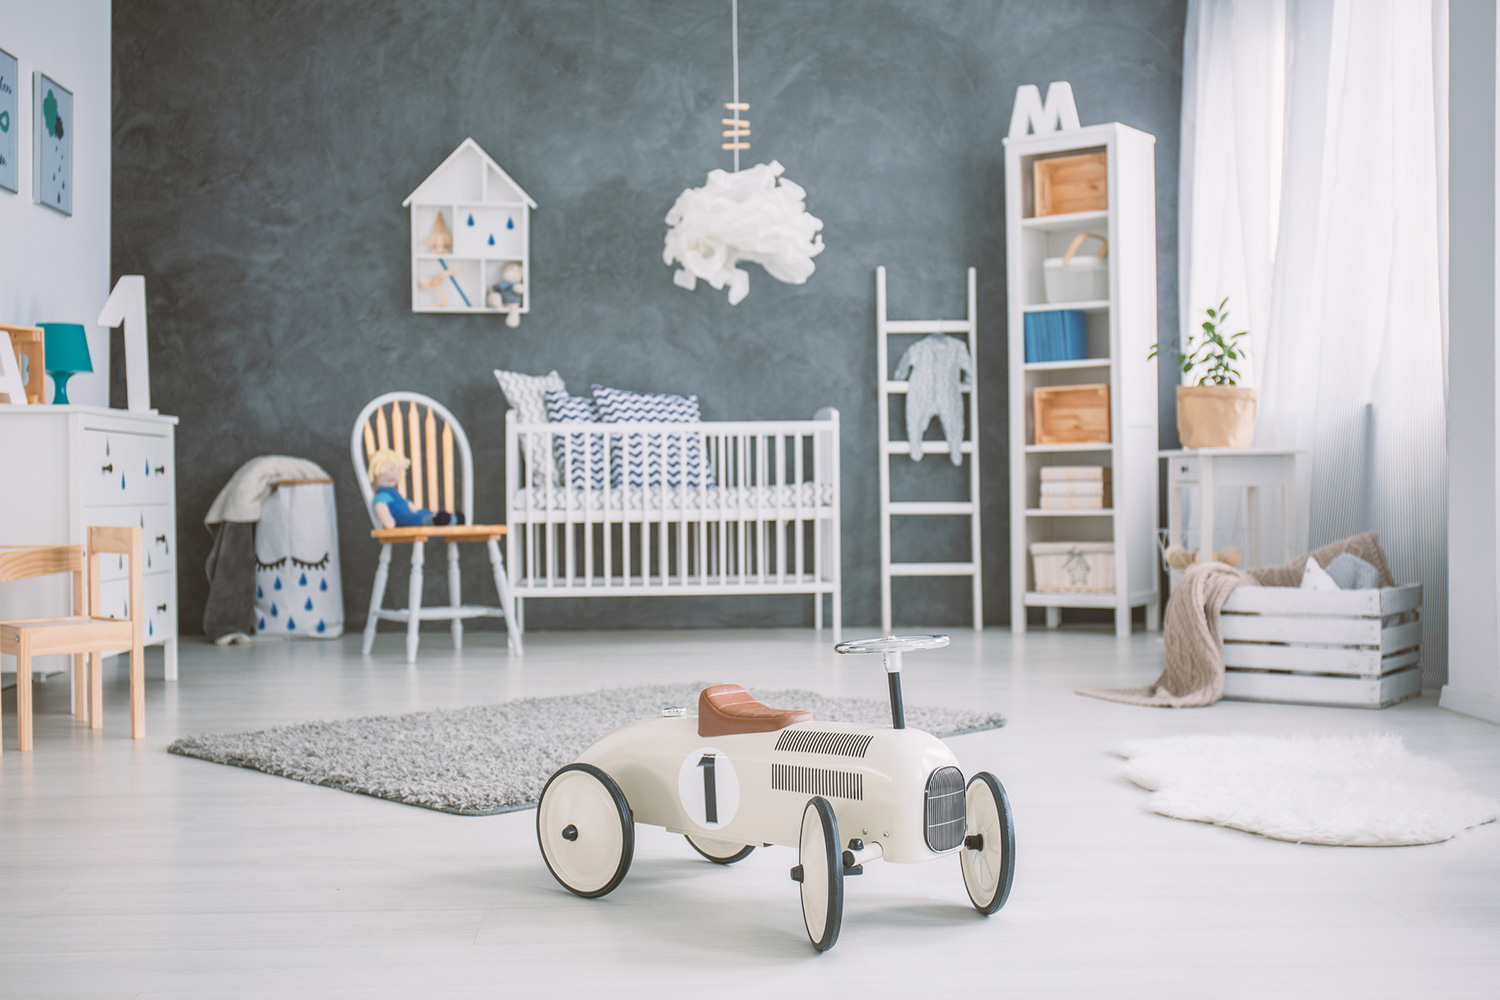 Beste Kinderkamer Industrieel : Beste kinderkamer industrieel: kinderkamer industrieel best of